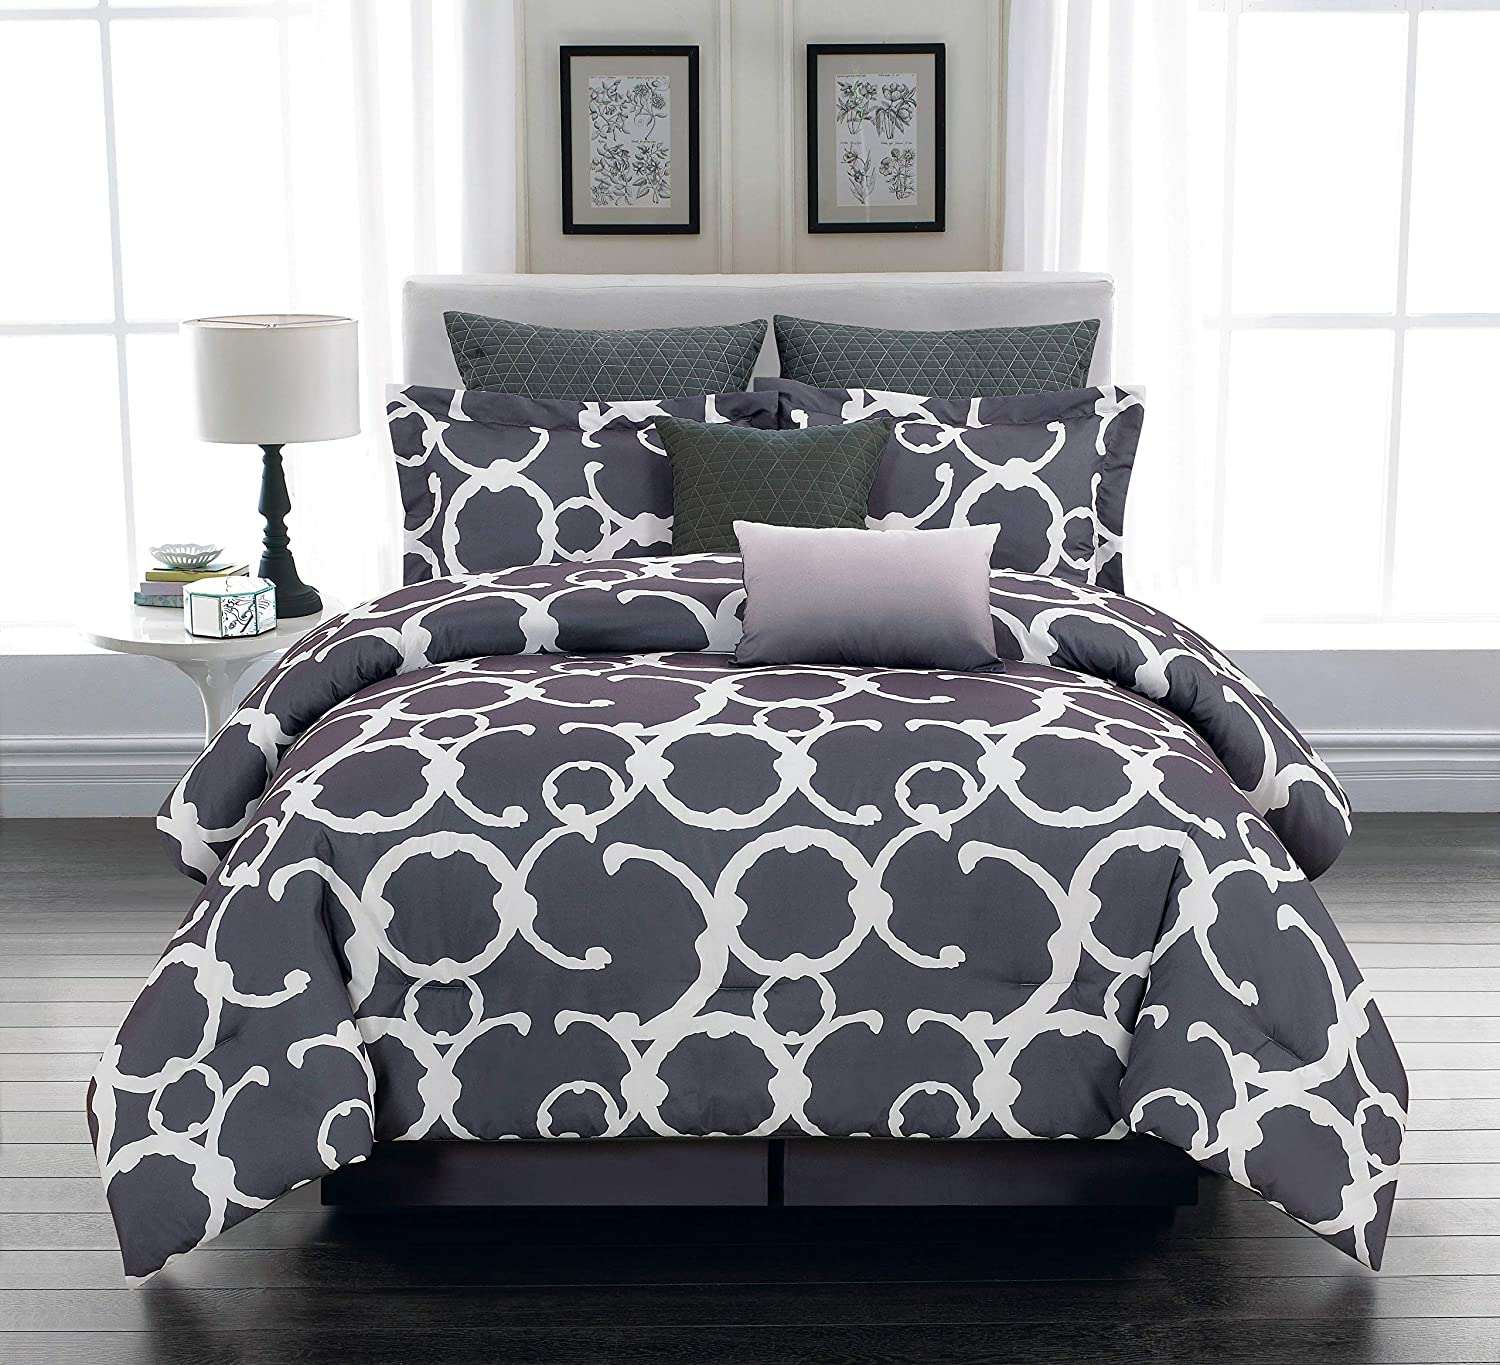 Home Maison Rhys Hotel Quality Luxury Comforter Duvet Insert Cover Hypoallergenic   10 Piece Set   Geometric Collection, Queen, Grey